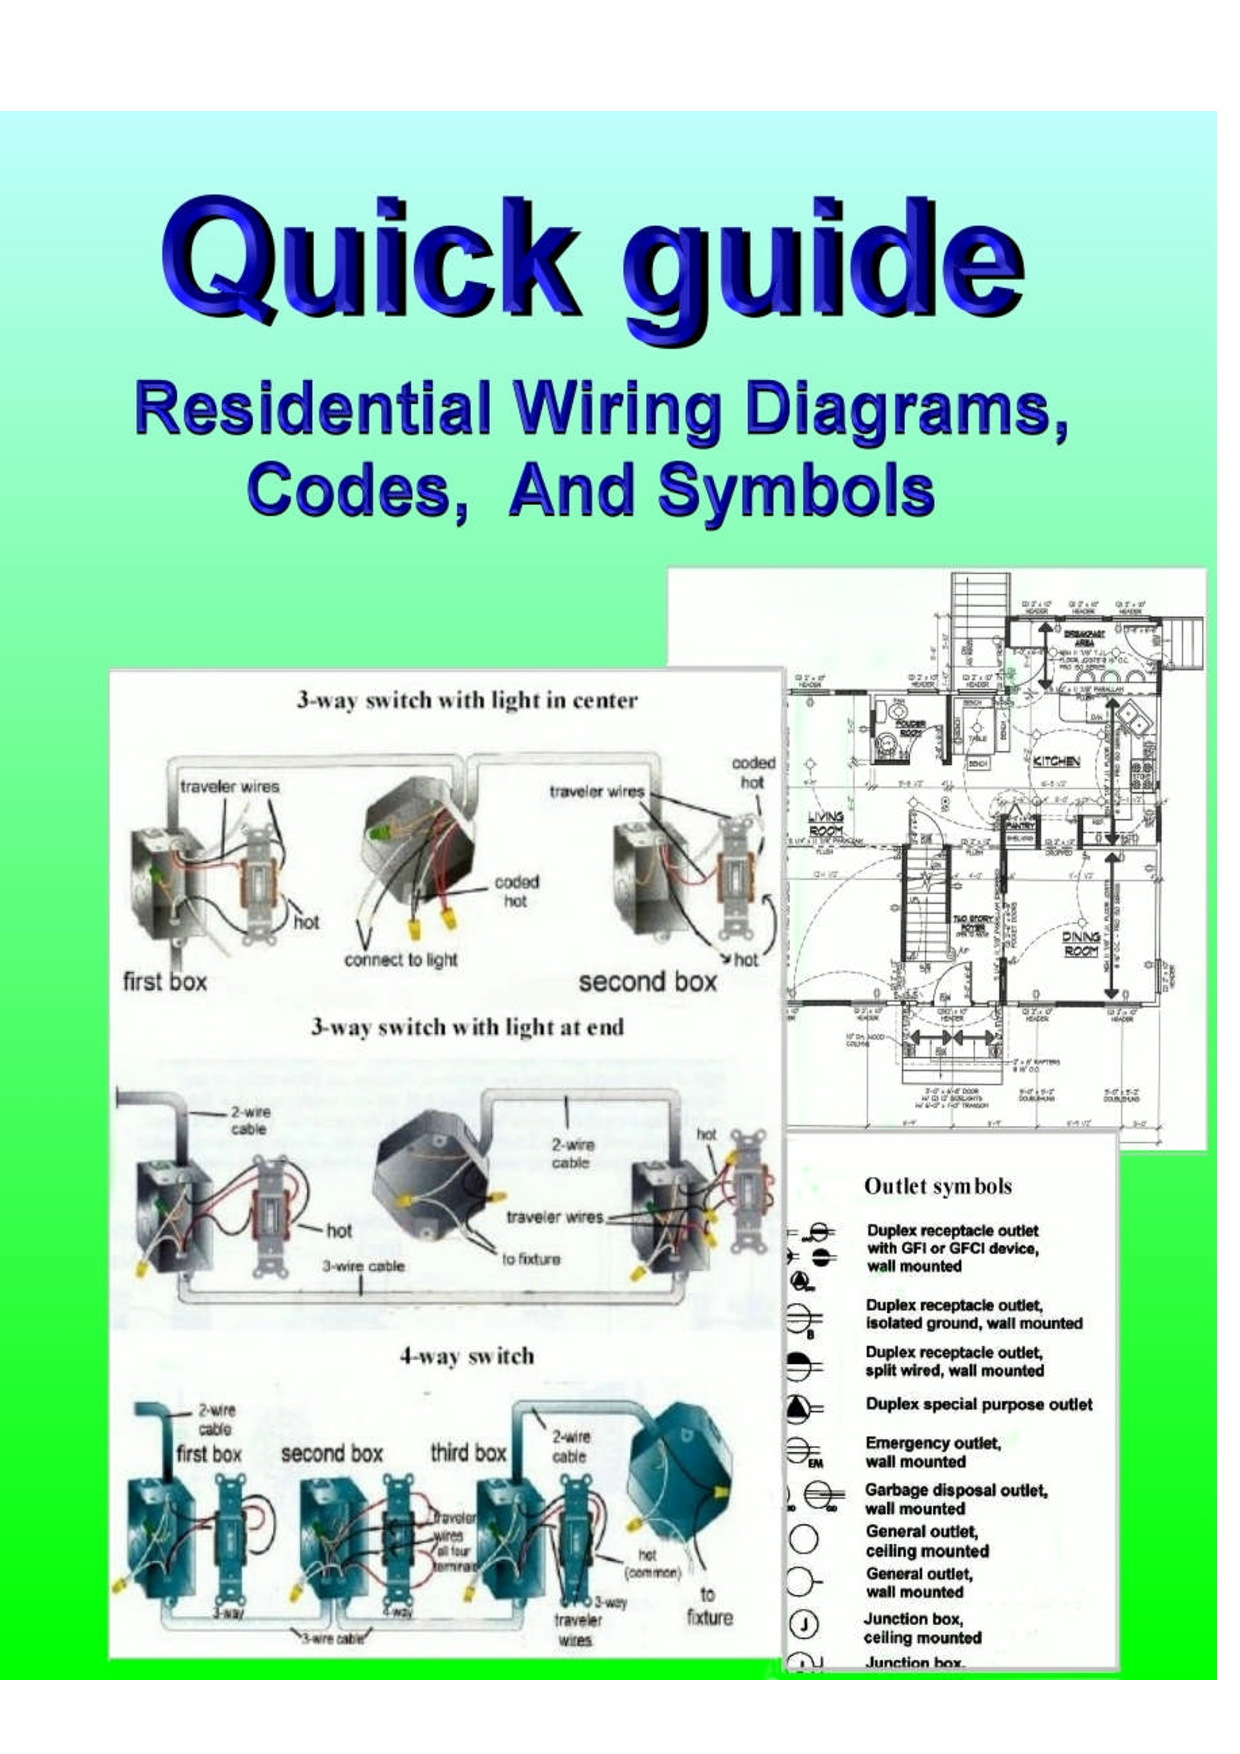 Home Phone Wiring Guide Library Diagram Electrical Diagramspdf Download Legal Documents 39 Pages With Many Diagrams And Illustrations